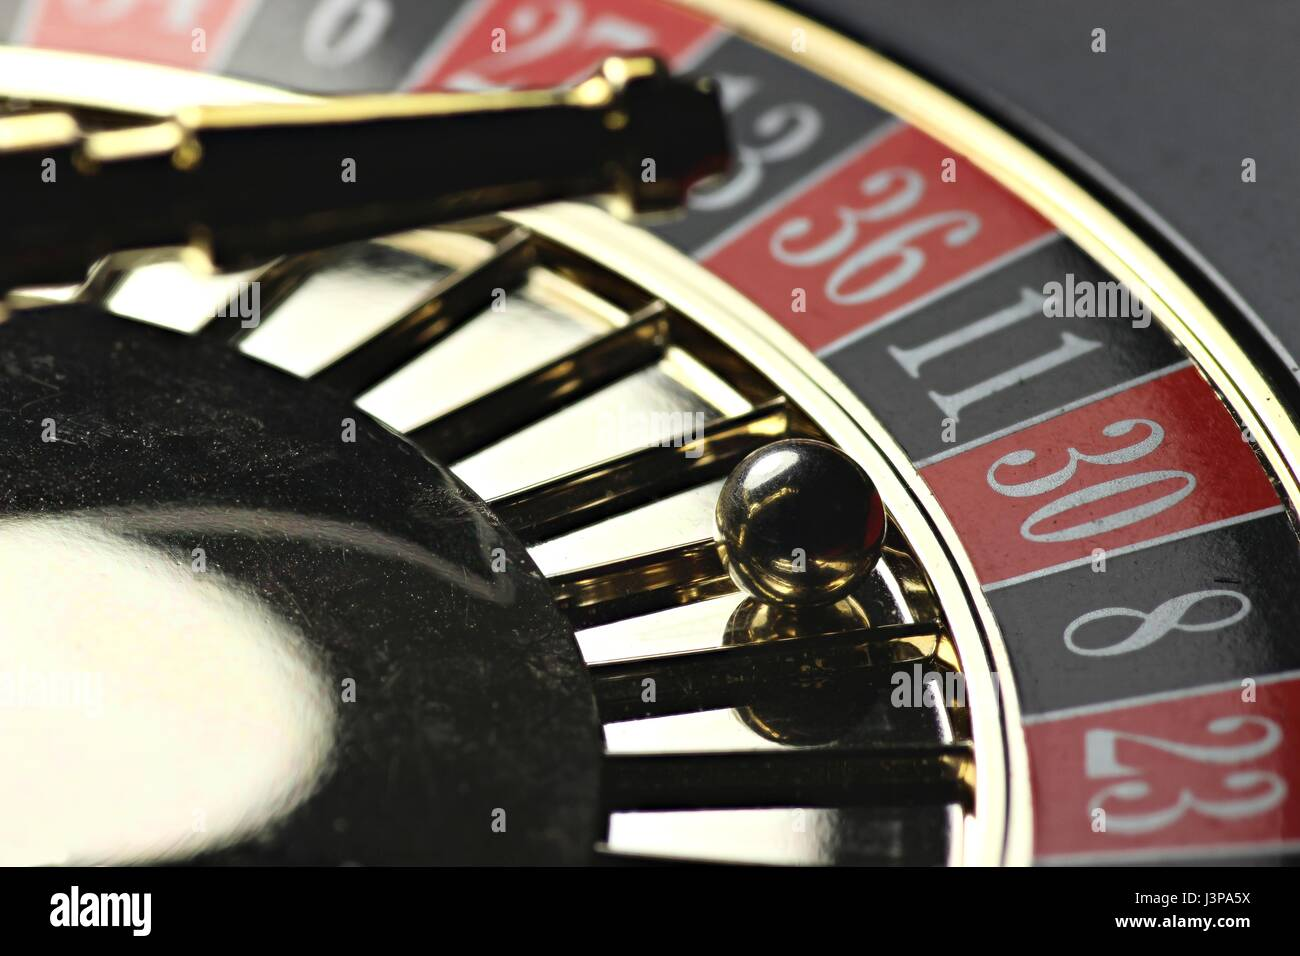 winning number in roulette - Stock Image